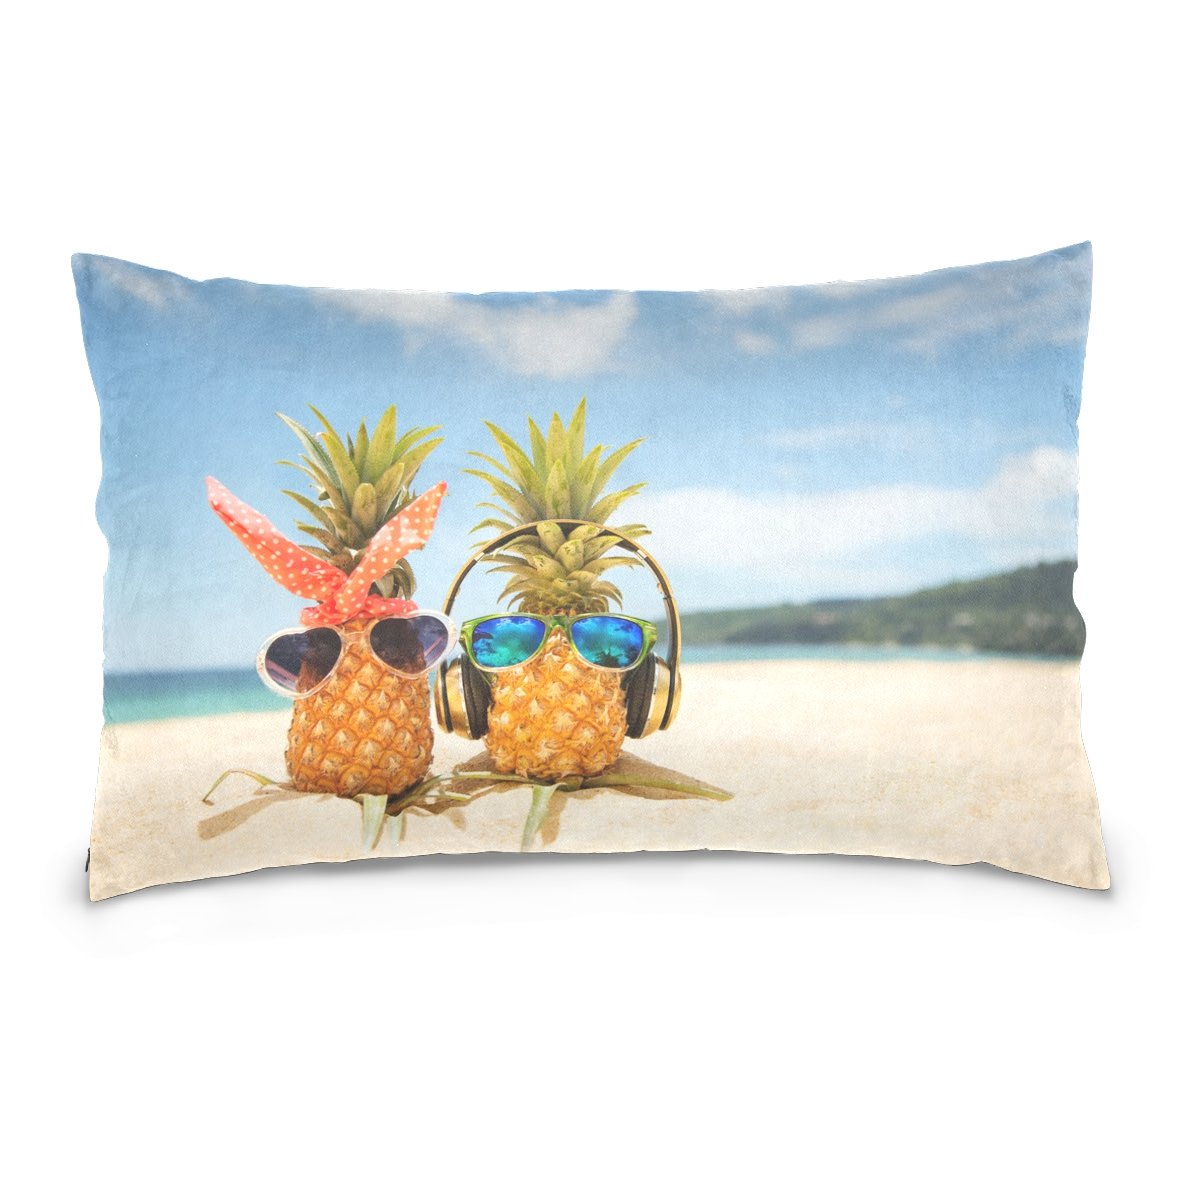 Top Carpenter Pineapples Love Velvet Oblong Lumbar Plush Throw Pillow Cover/Shams Cushion Case - 16x24in - Decorative Invisible Zipper Design for Couch Sofa Pillowcase Only